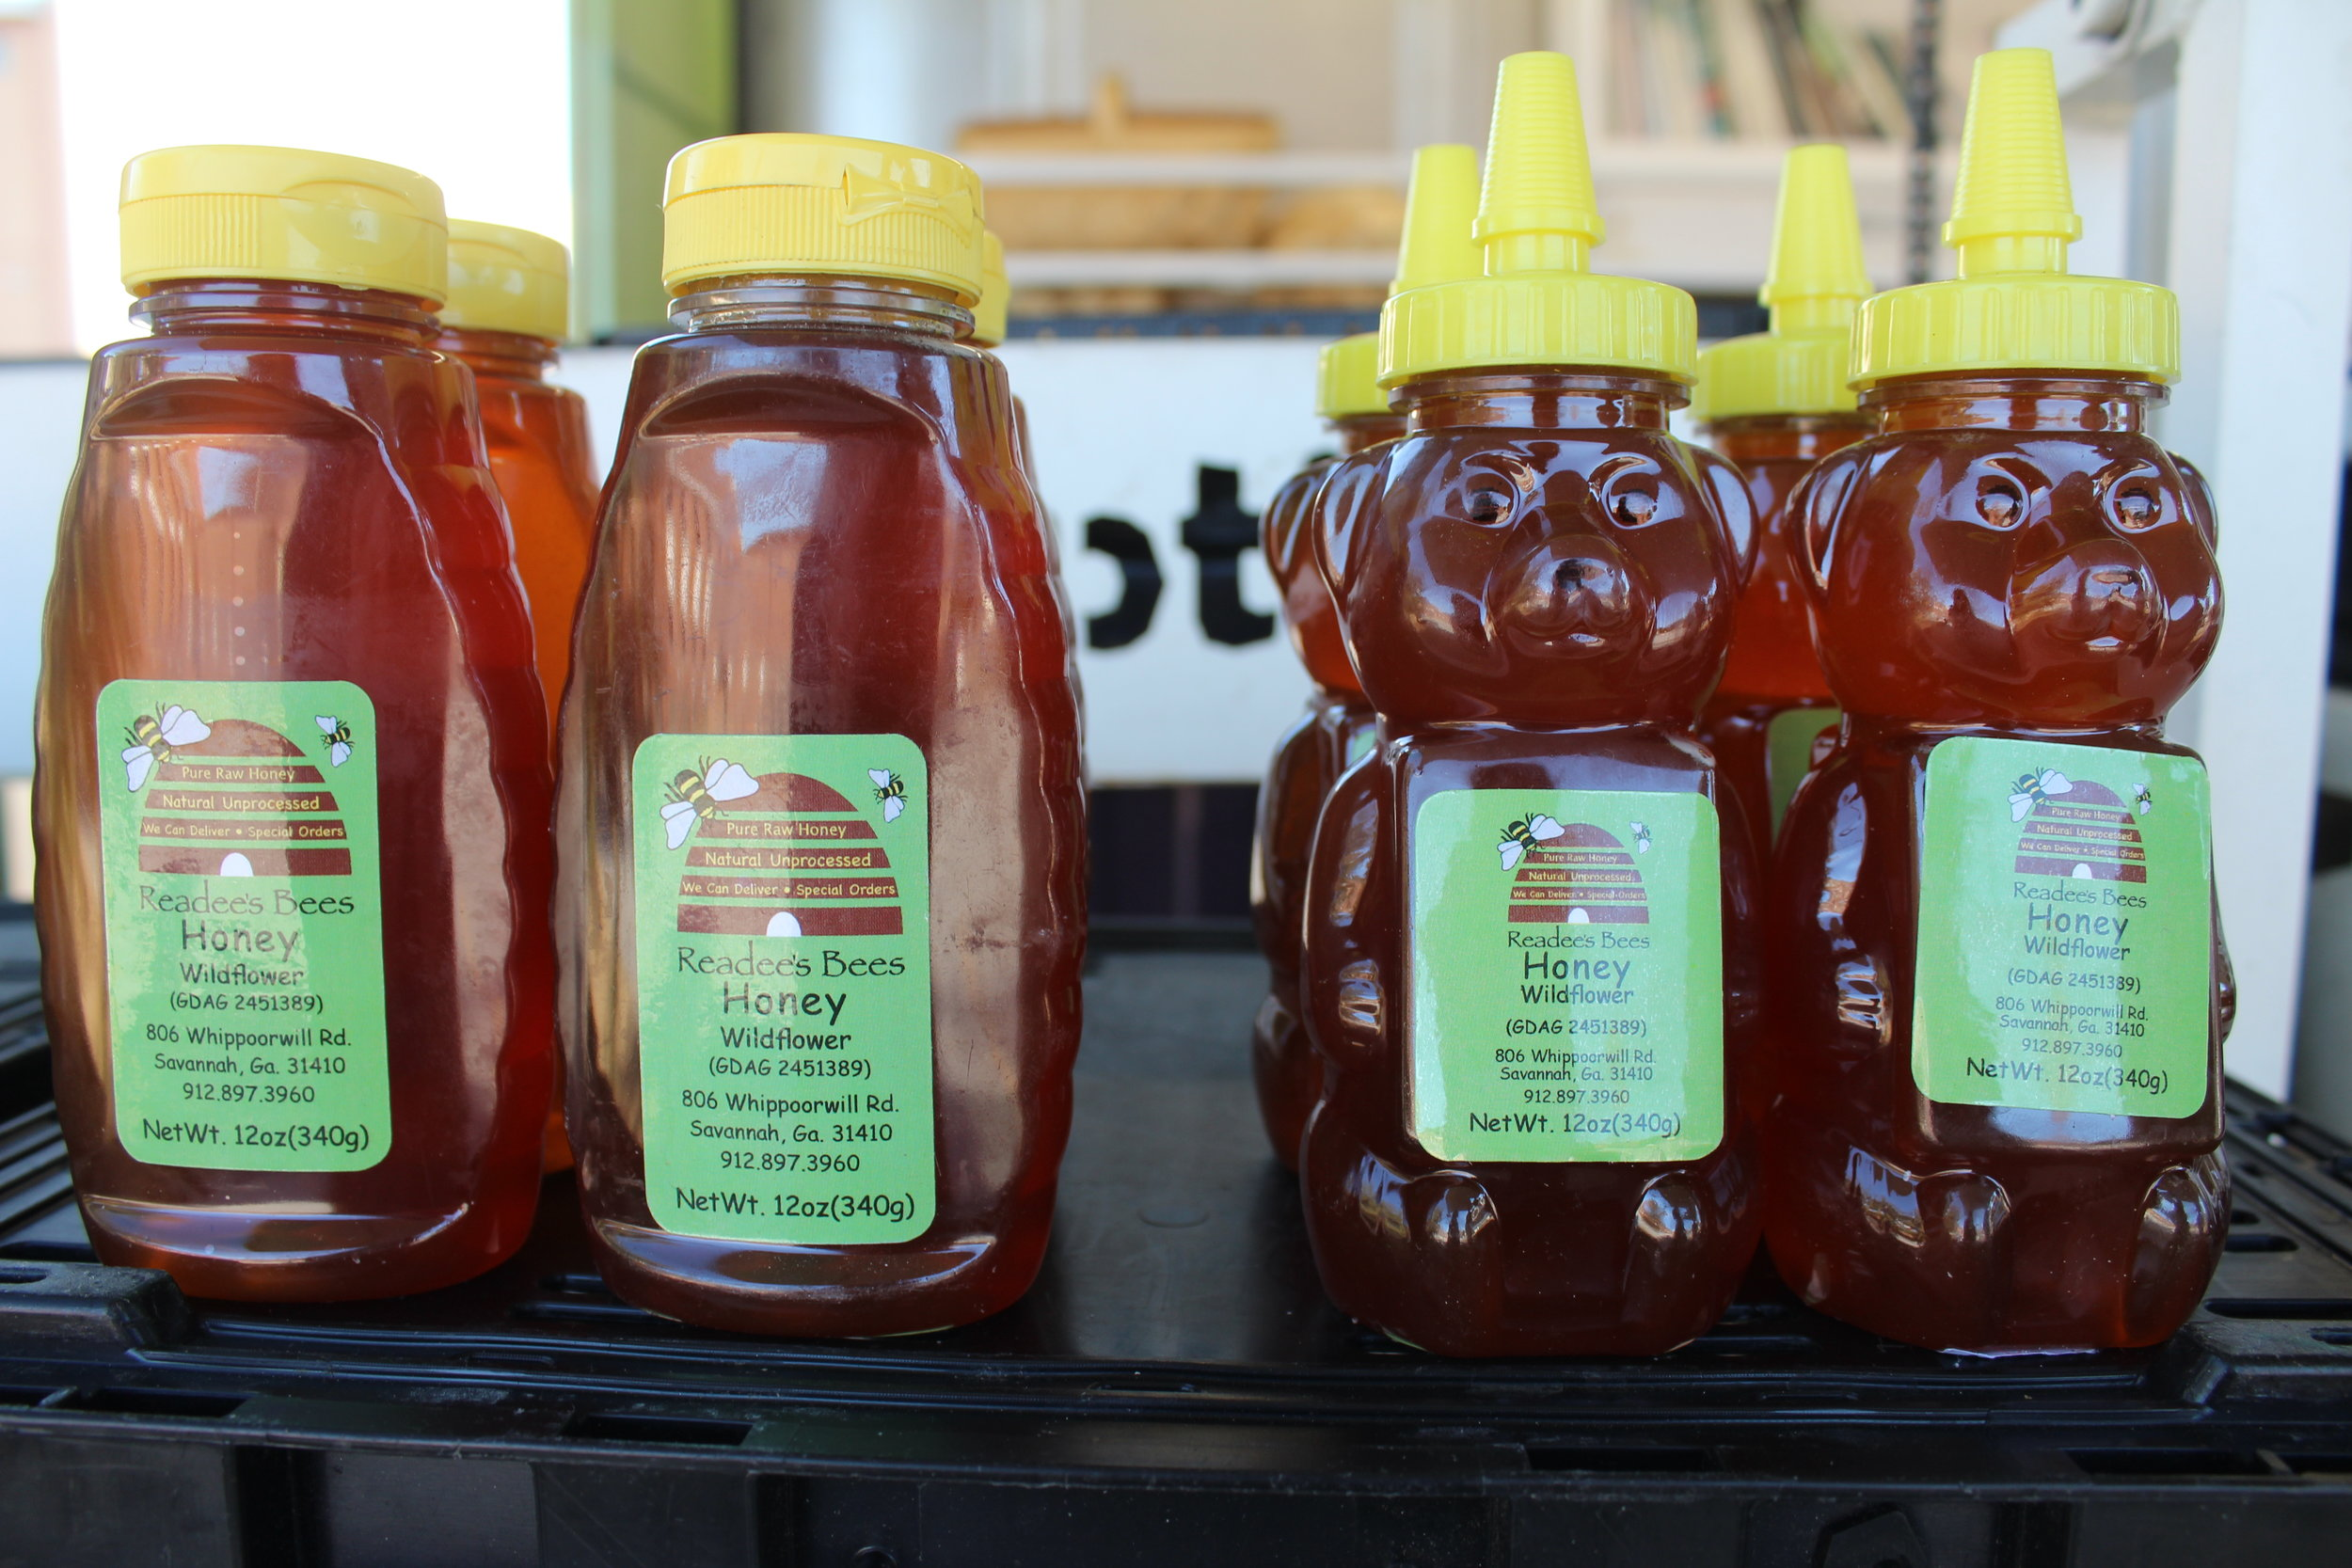 Honey, $12  Readbee's, 12oz pure raw honey. natural & unprocessed